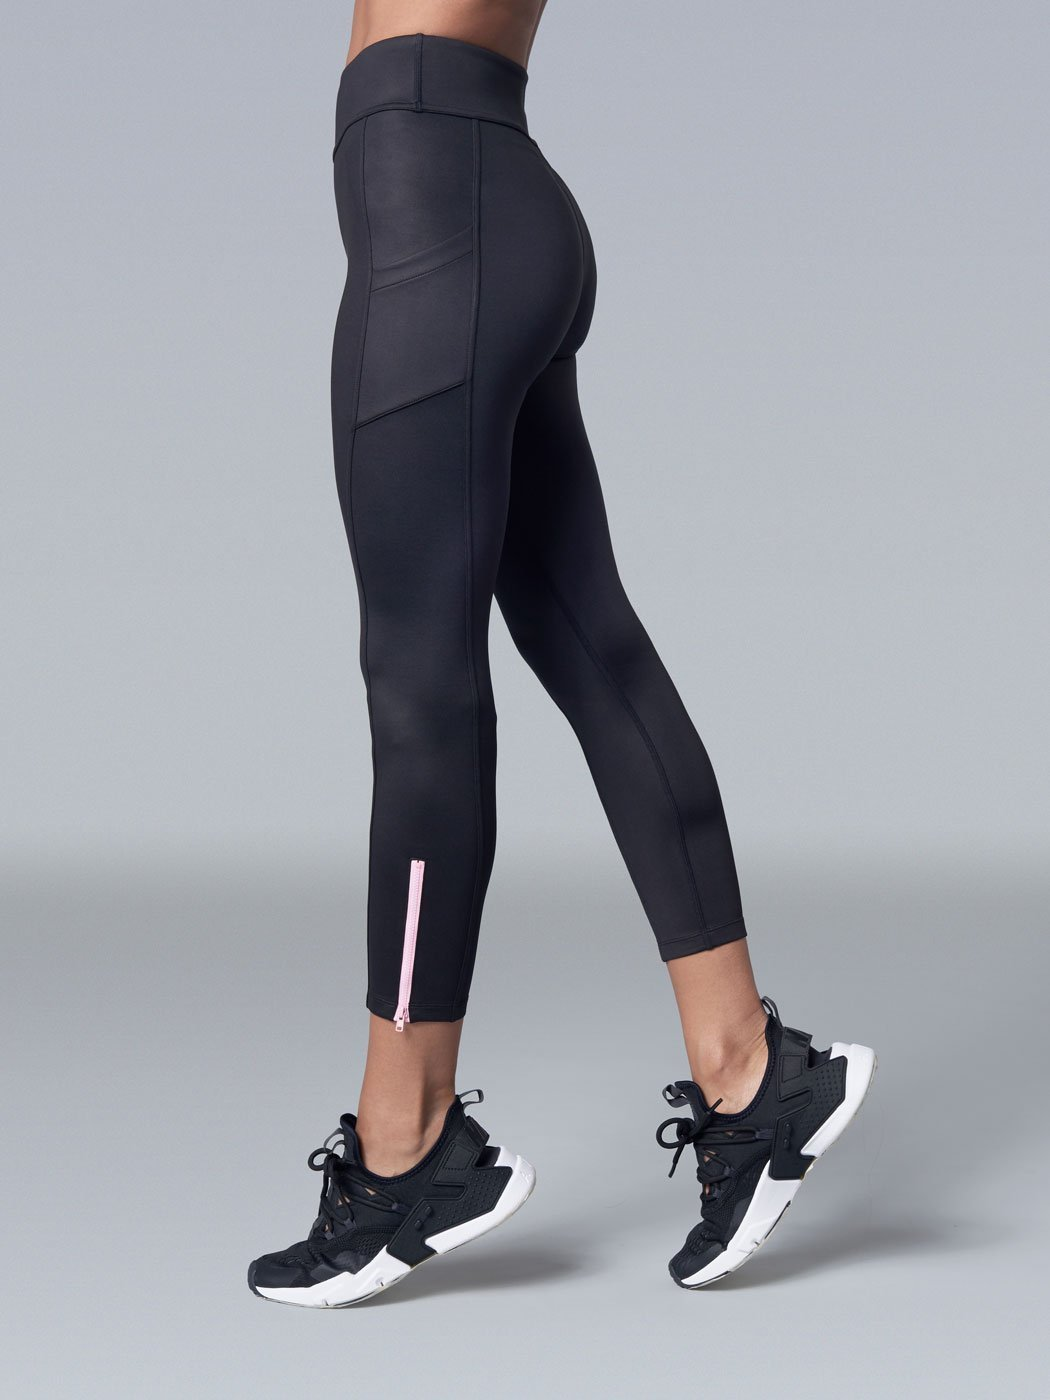 Ethereal Scuba High Waisted Legging